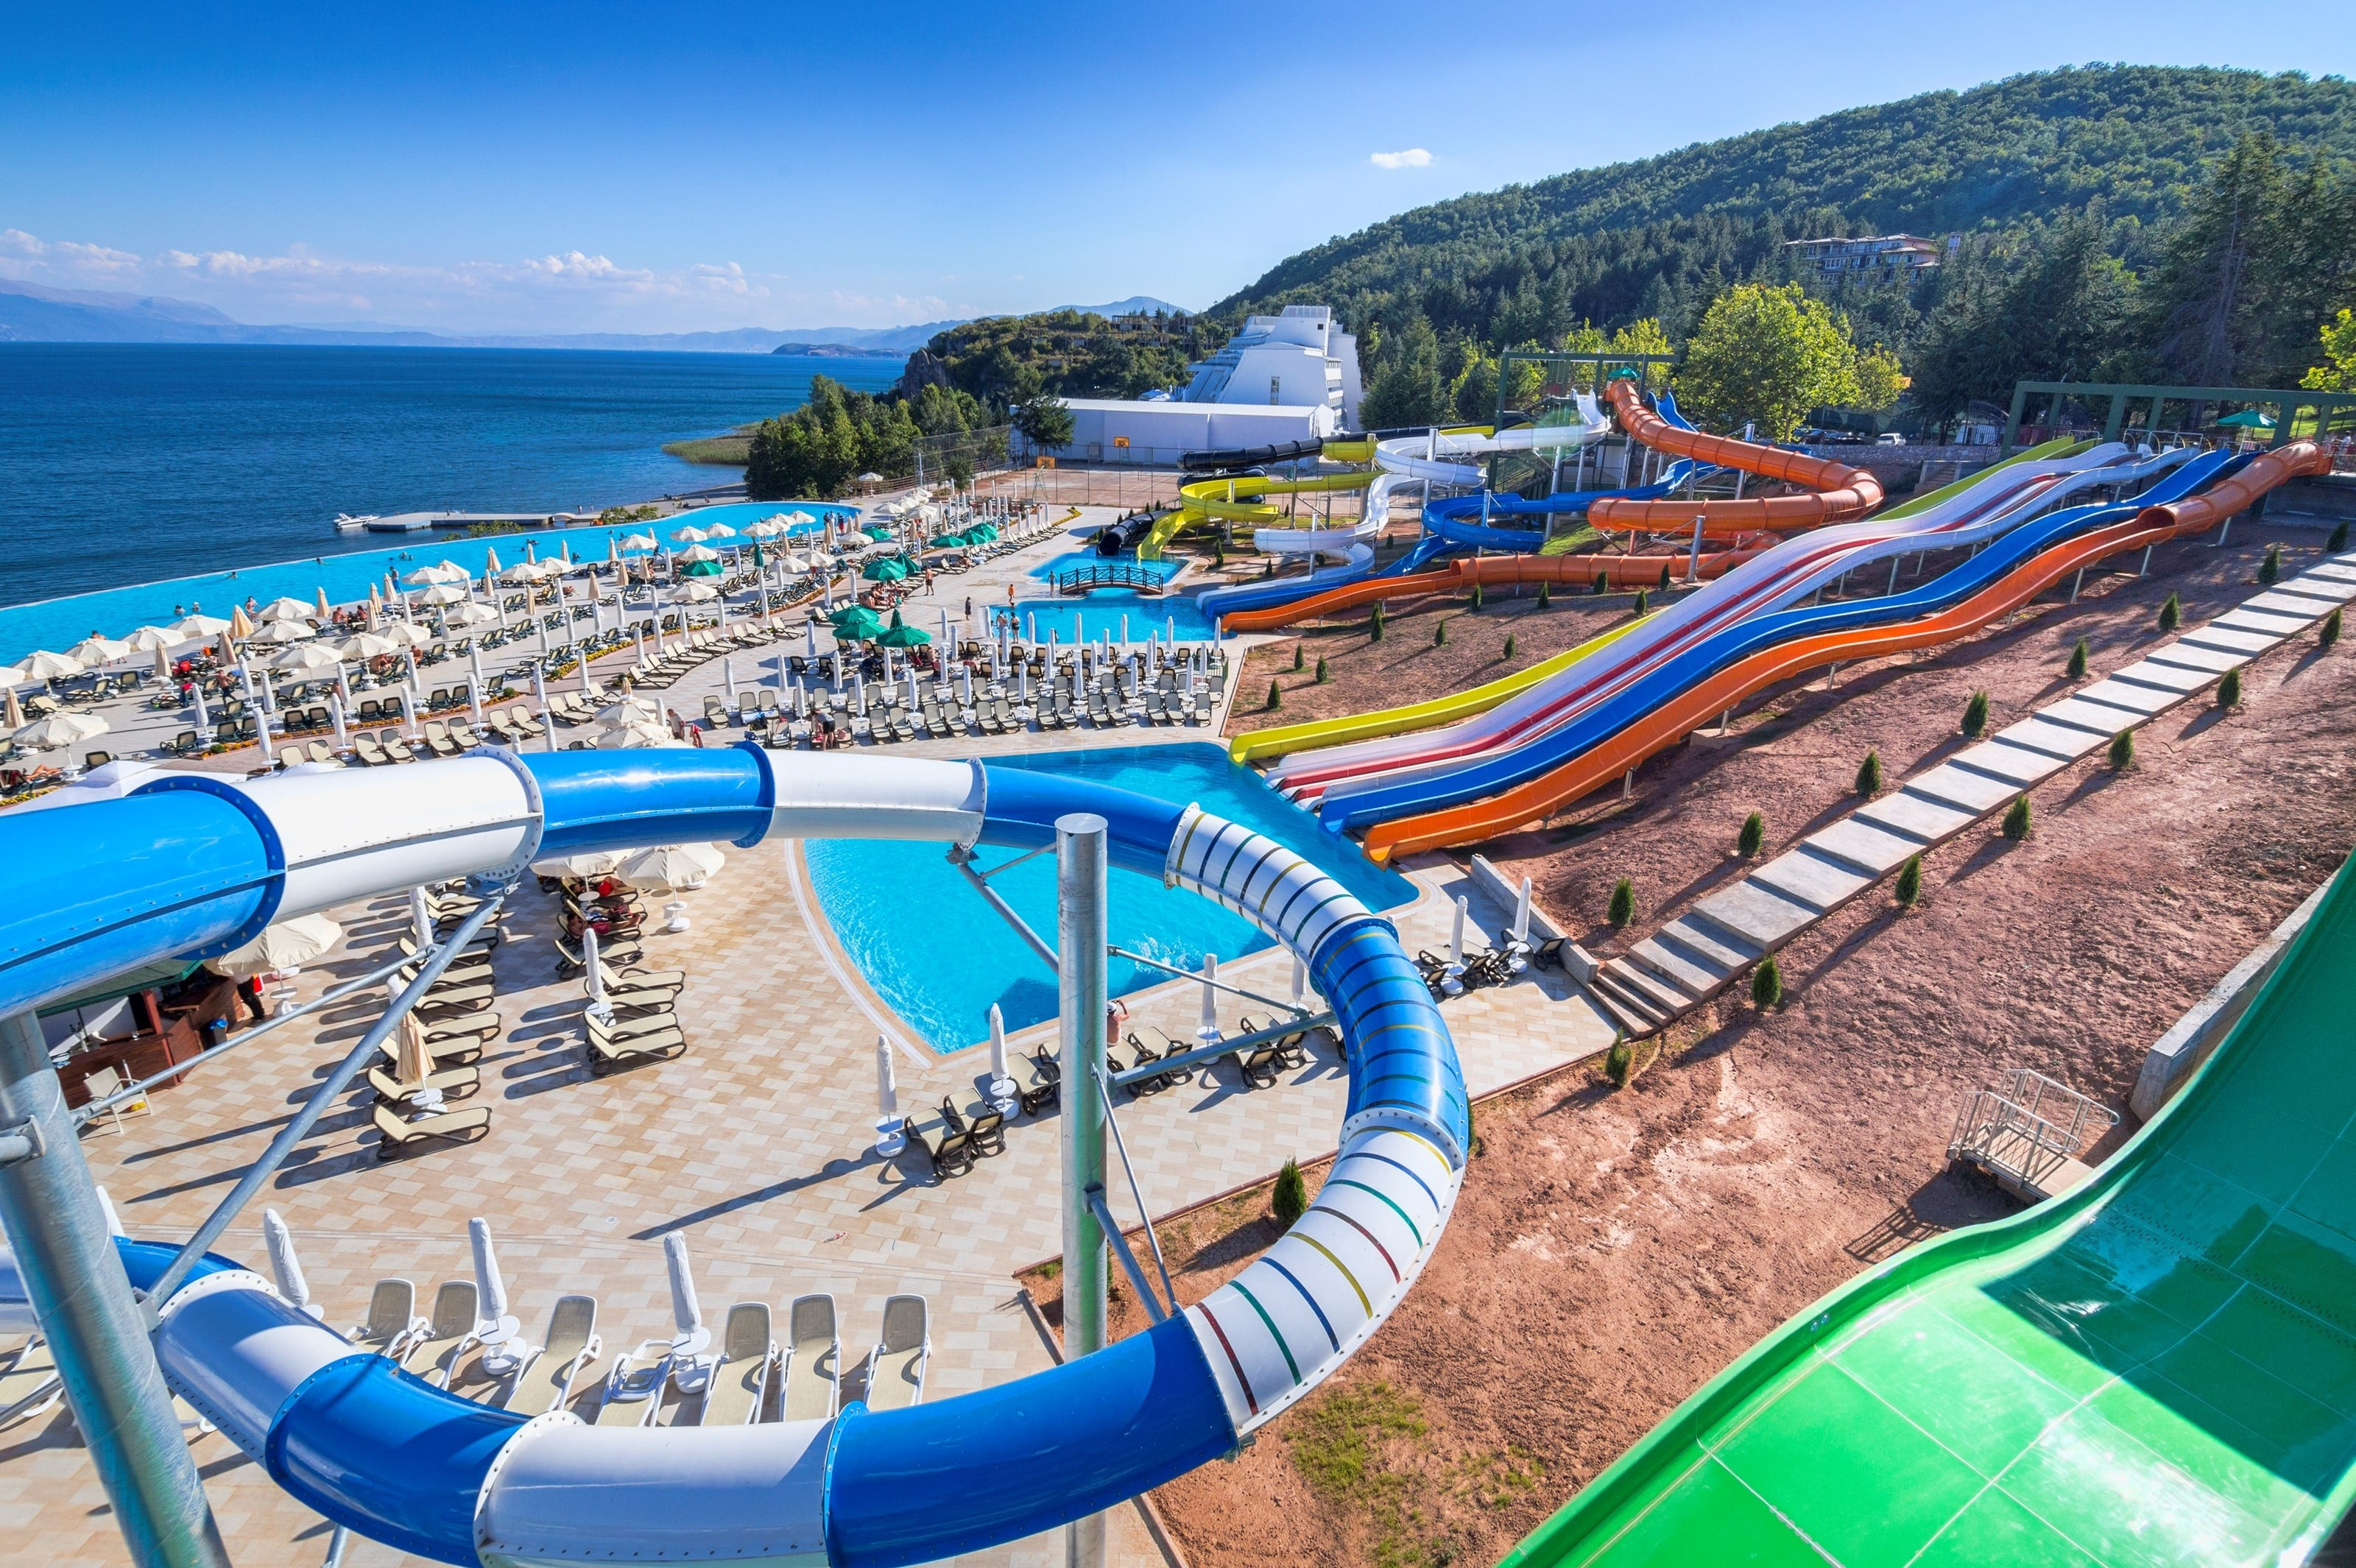 Waterpark van Izgrez Spa & Aquapark in Struga, Macedonië